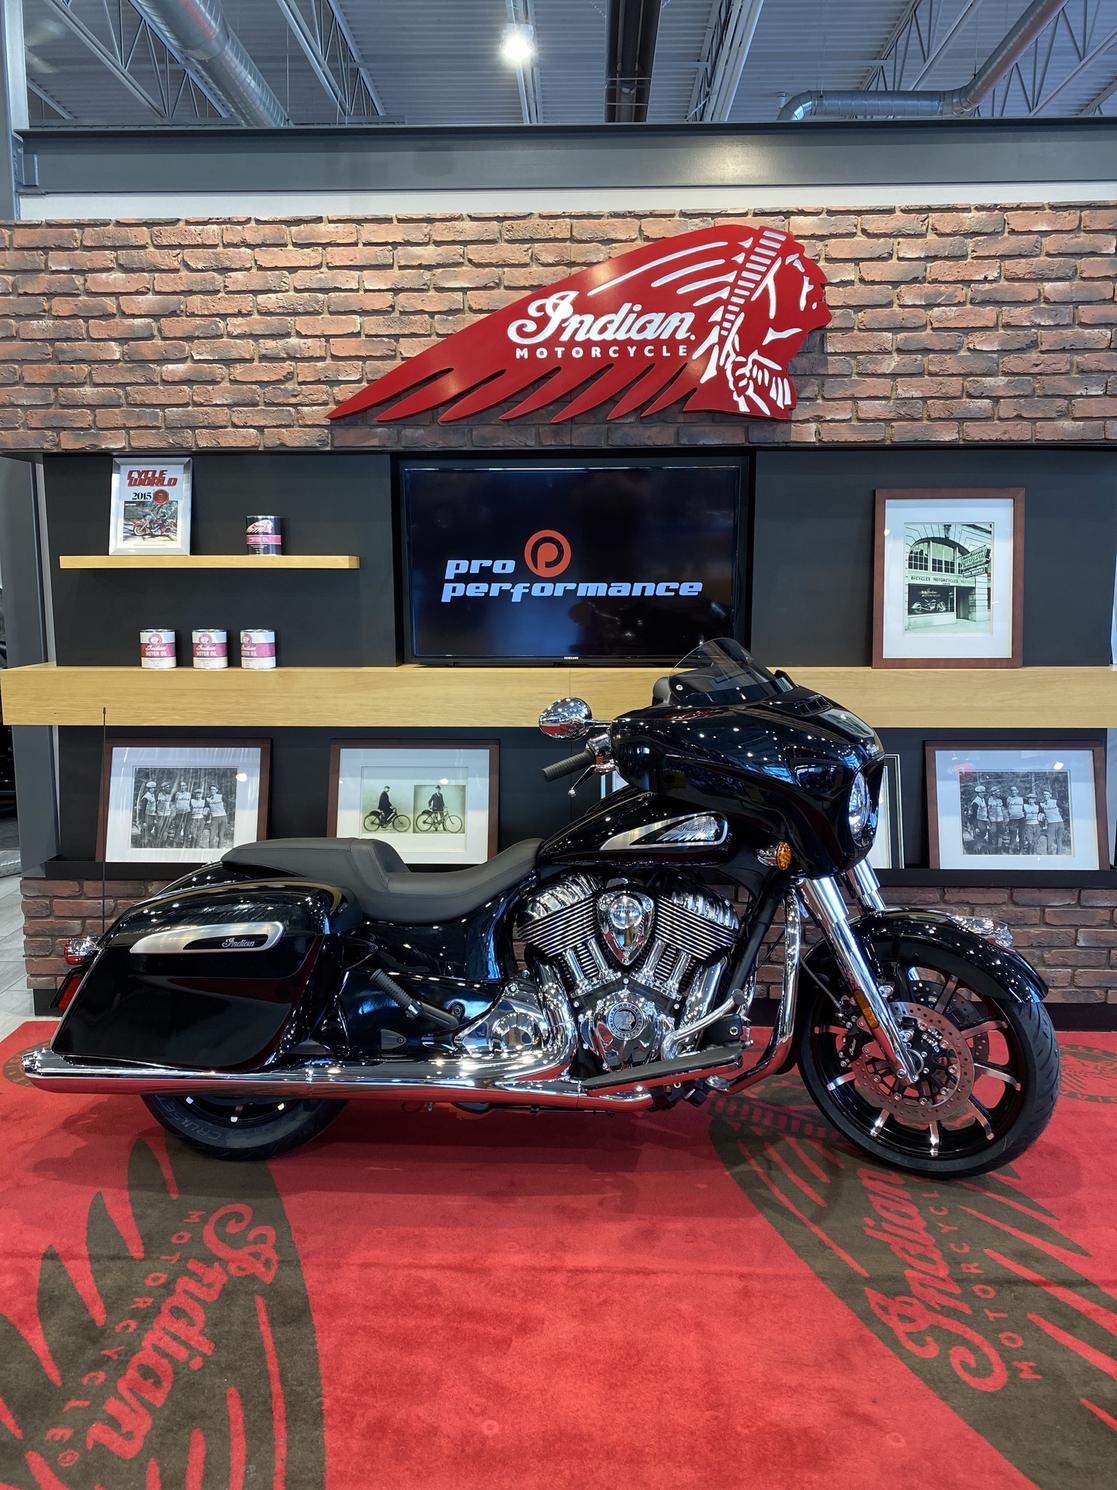 Indian Motorcycle Chieftain Limited 2021 - trsp & prep inclus.